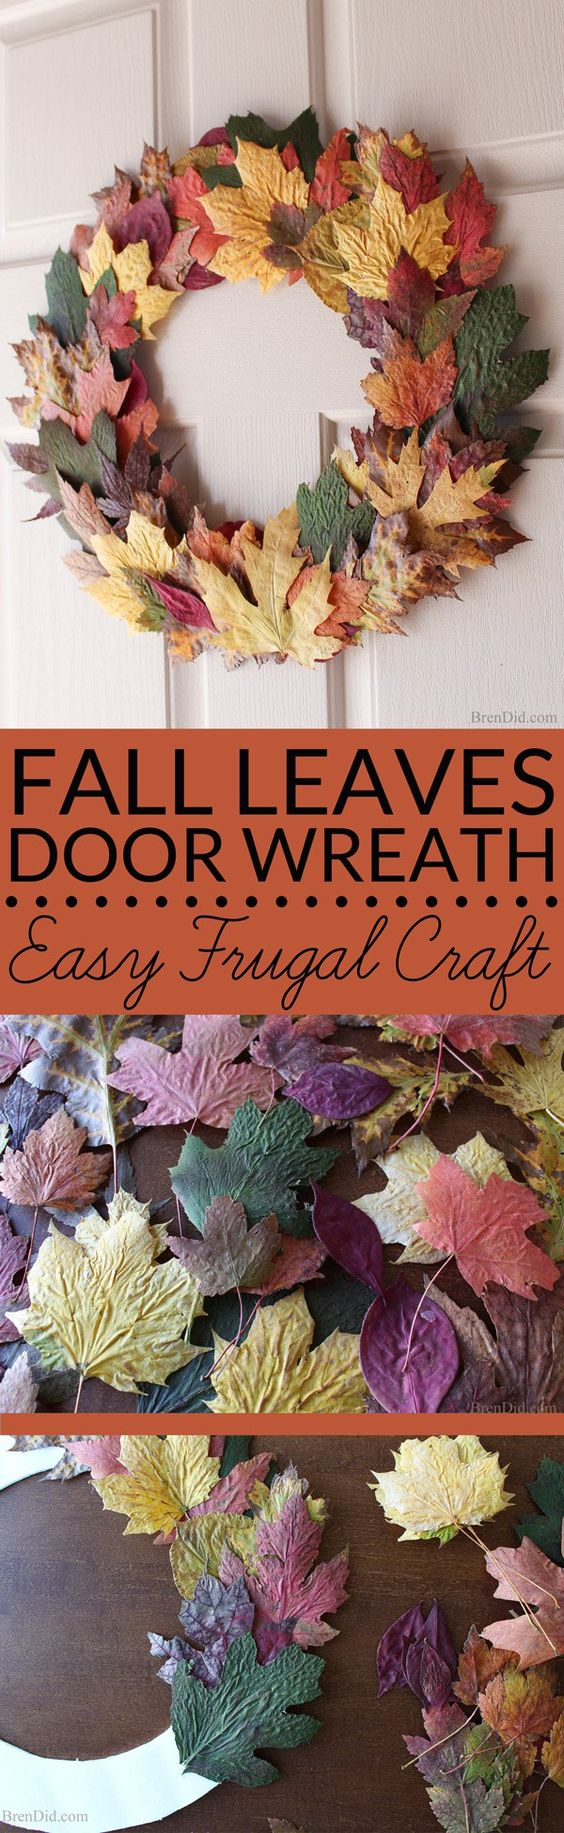 fall-leaves-crafts-2